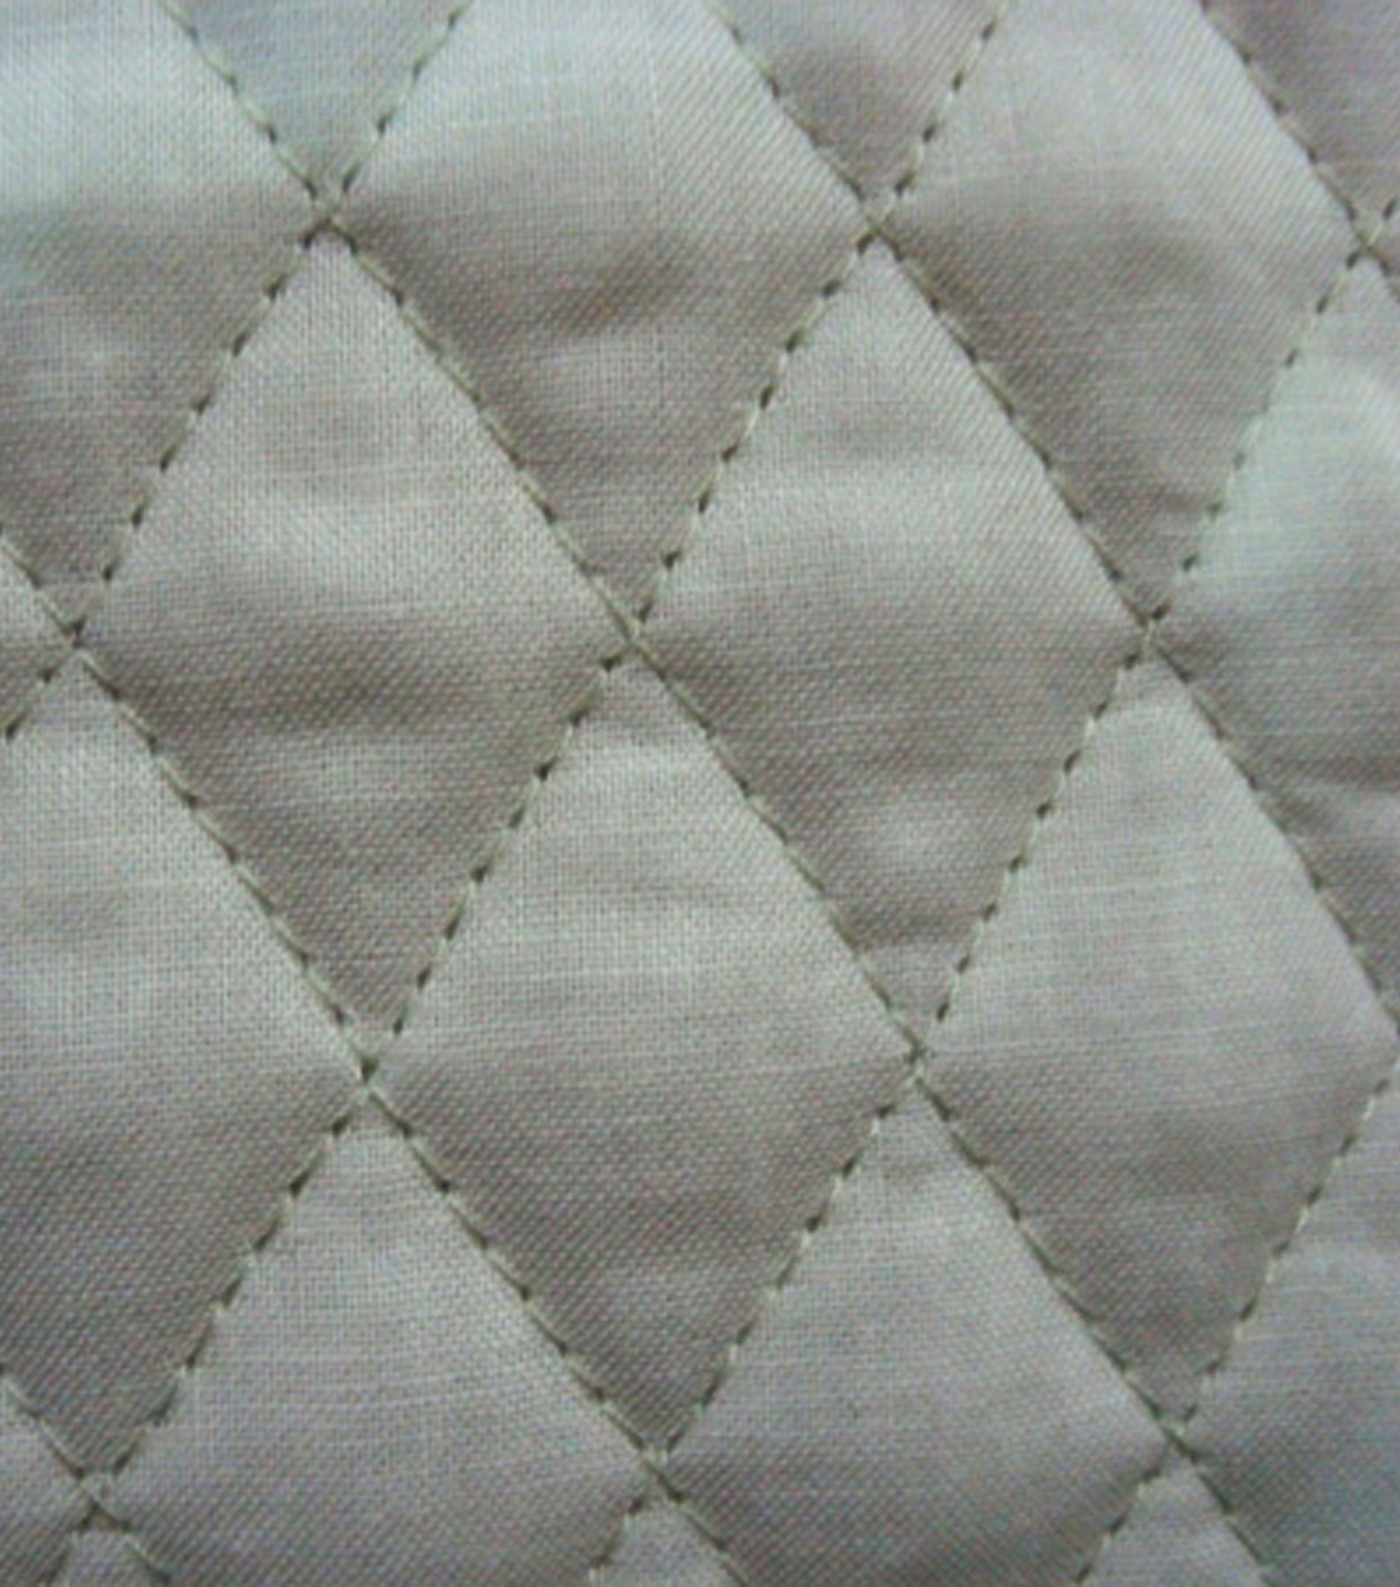 Double Faced Pre-Quilted Cotton Fabric -Diamond Solids, Sage Green